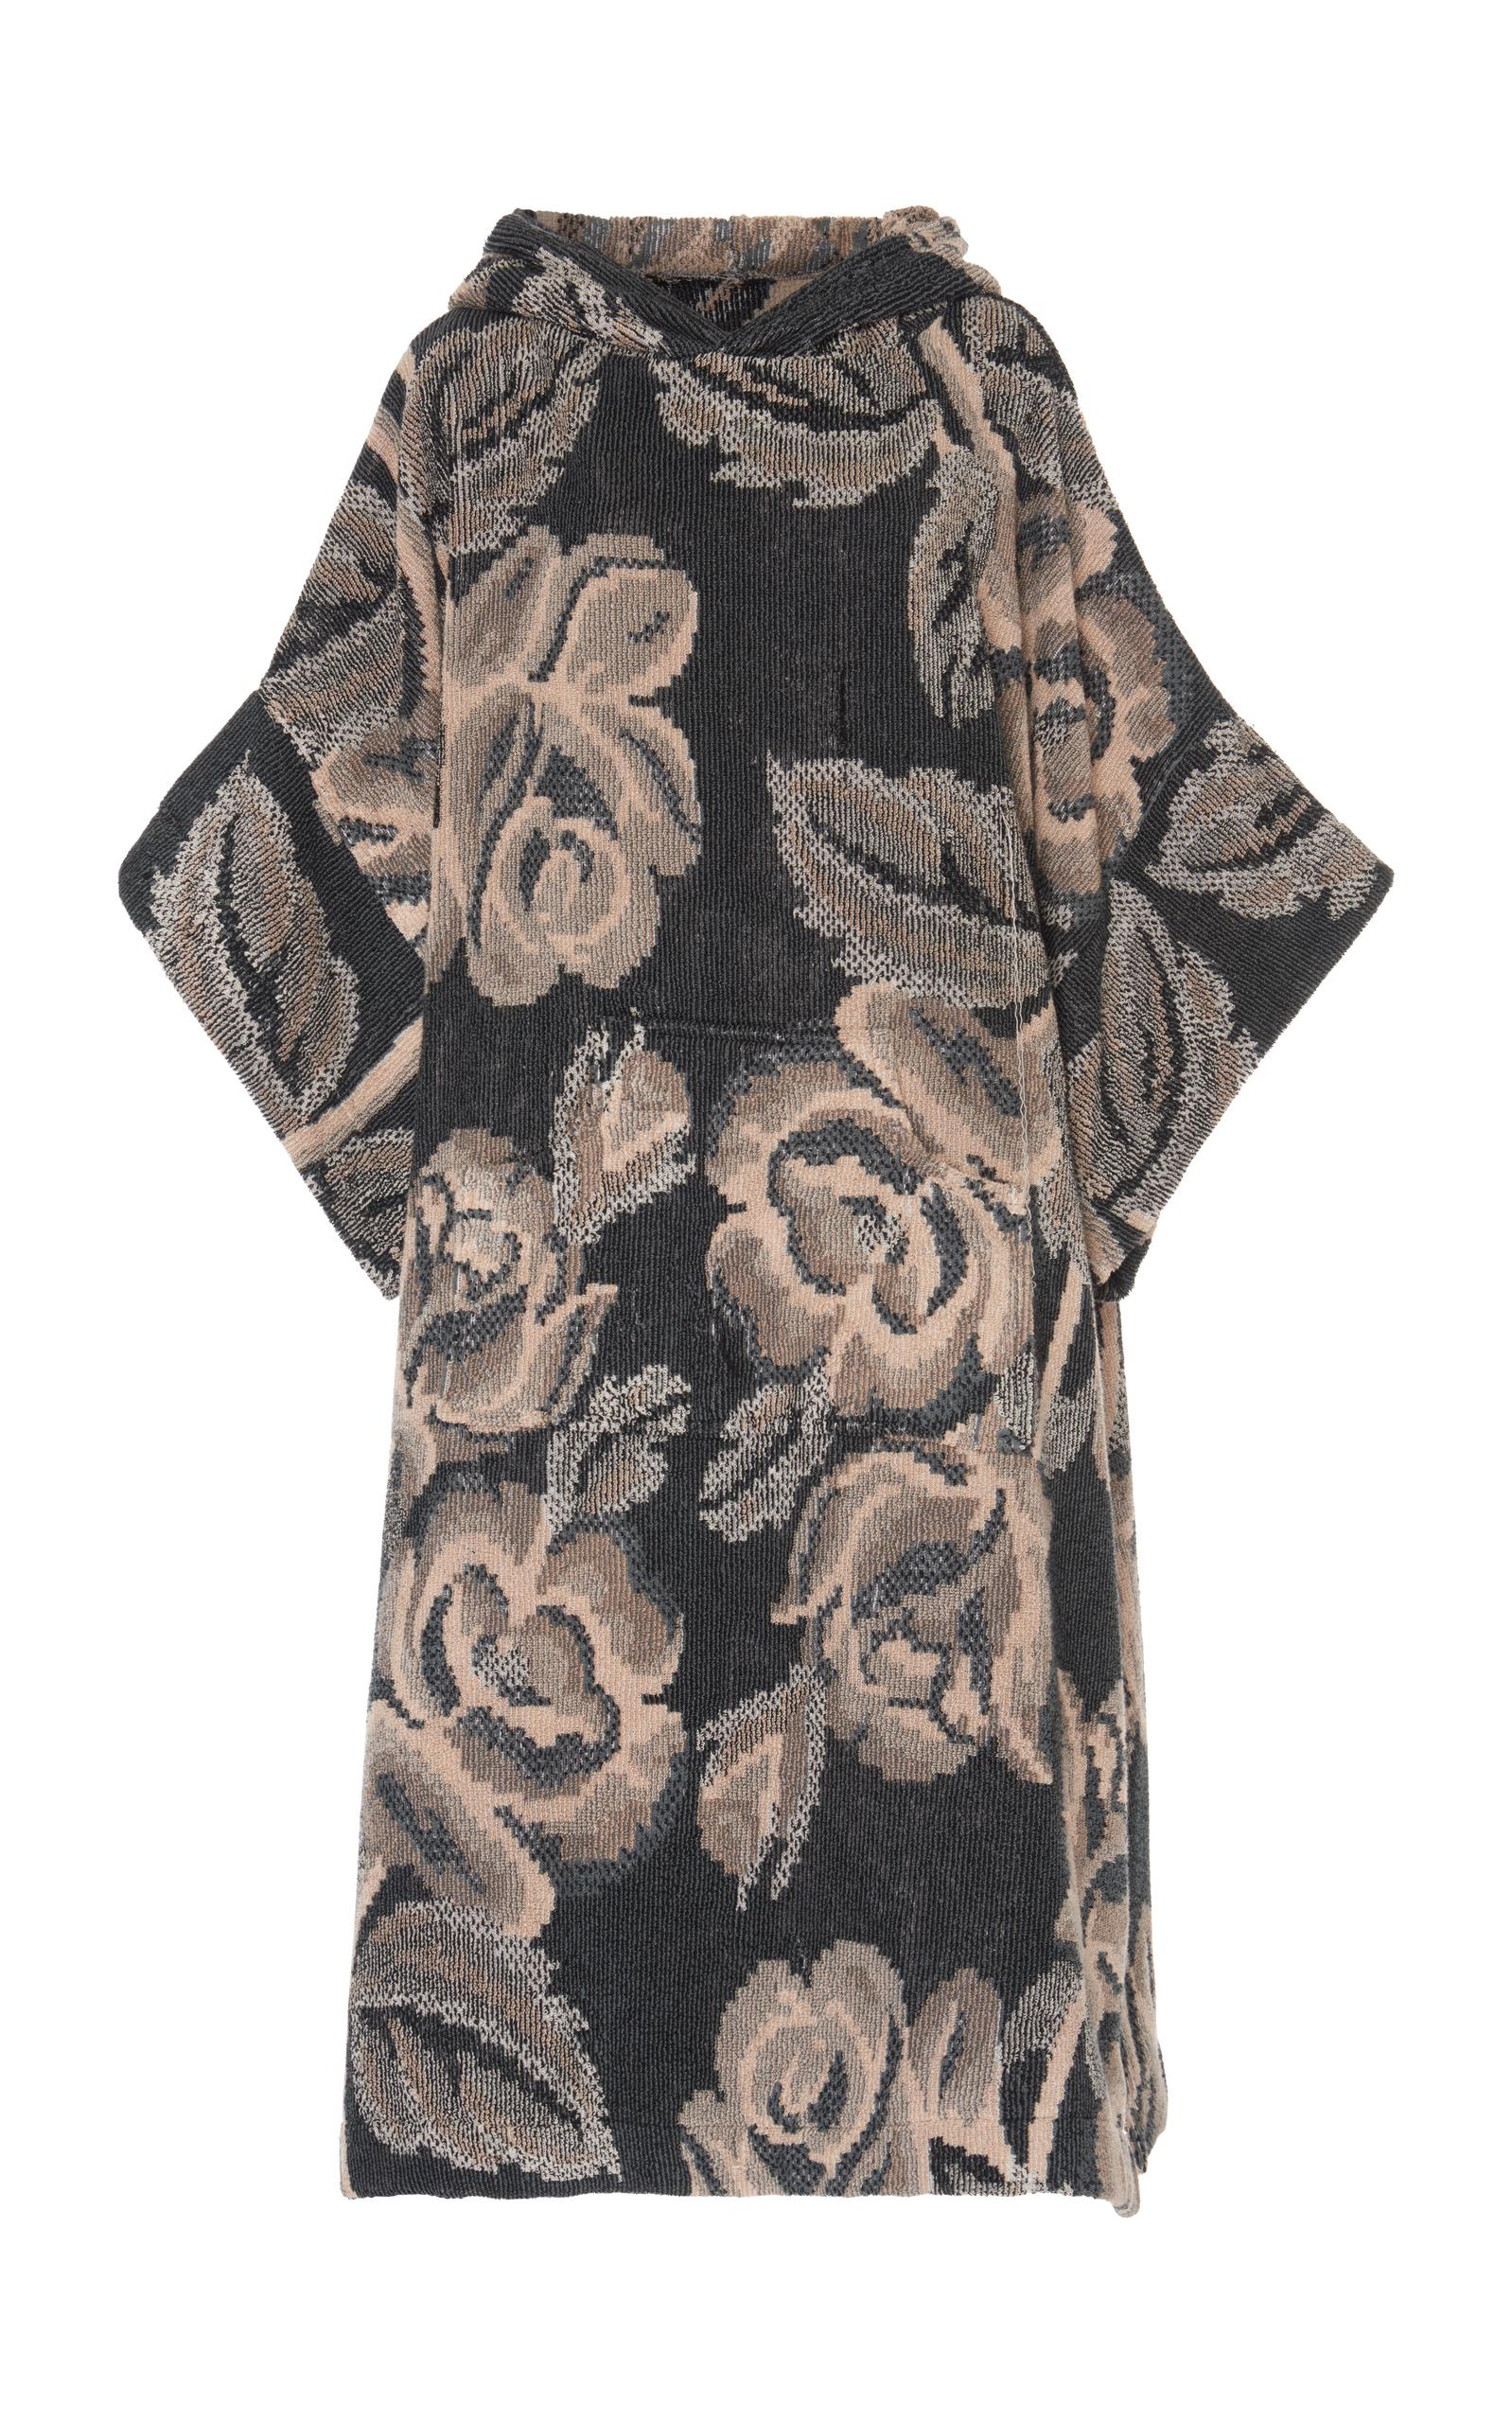 Maison Margiela Oversized Towel Poncho In Floral